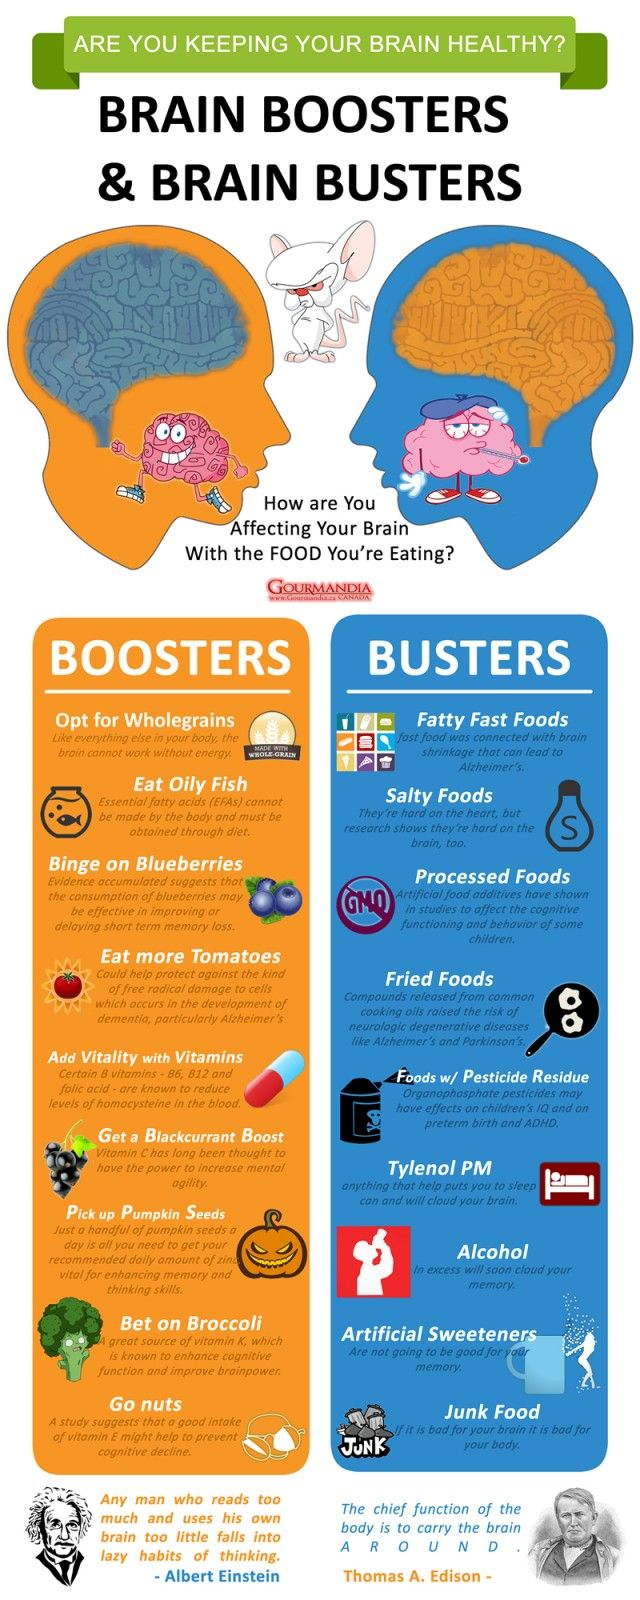 brain boosters and brain busters - #infographic keeping your #brain #healthy